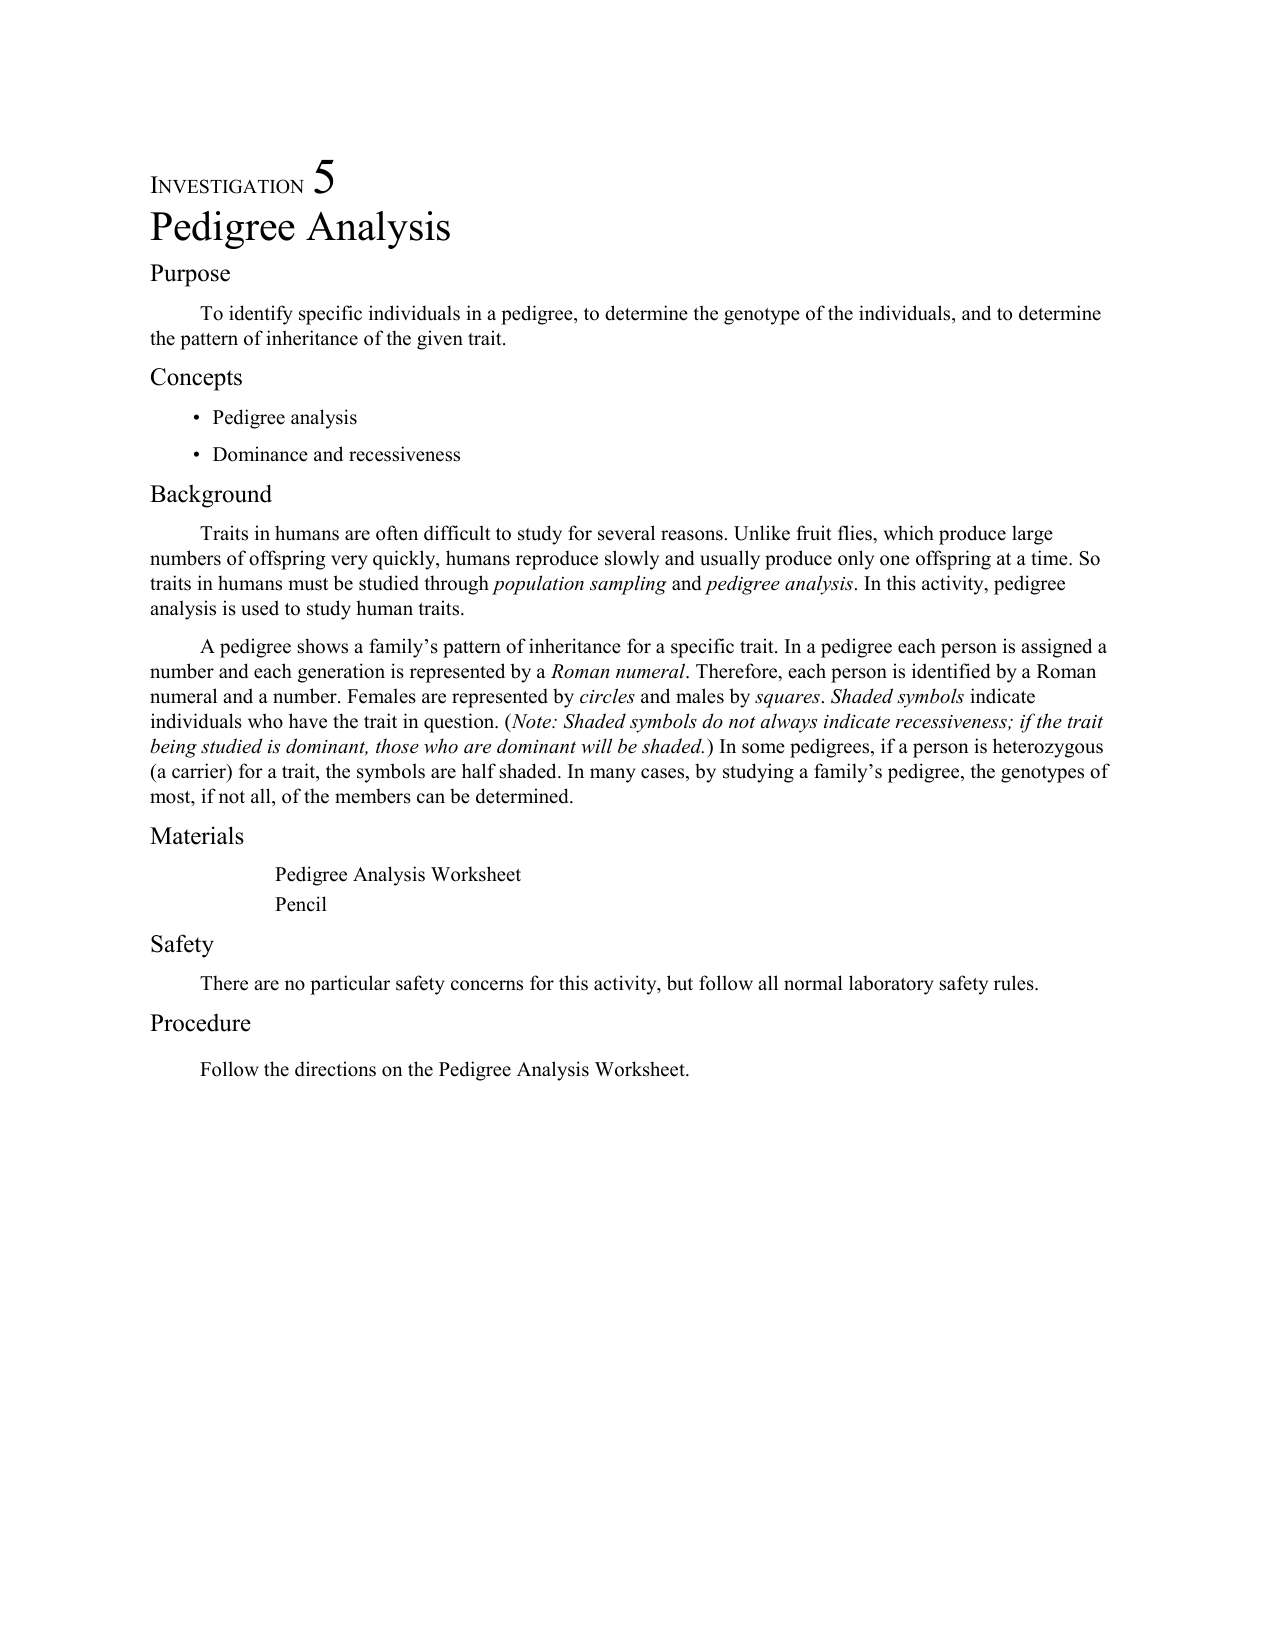 Investigation 5 Pedigree Analysis Purpose To identify specific – Pedigree Analysis Worksheet